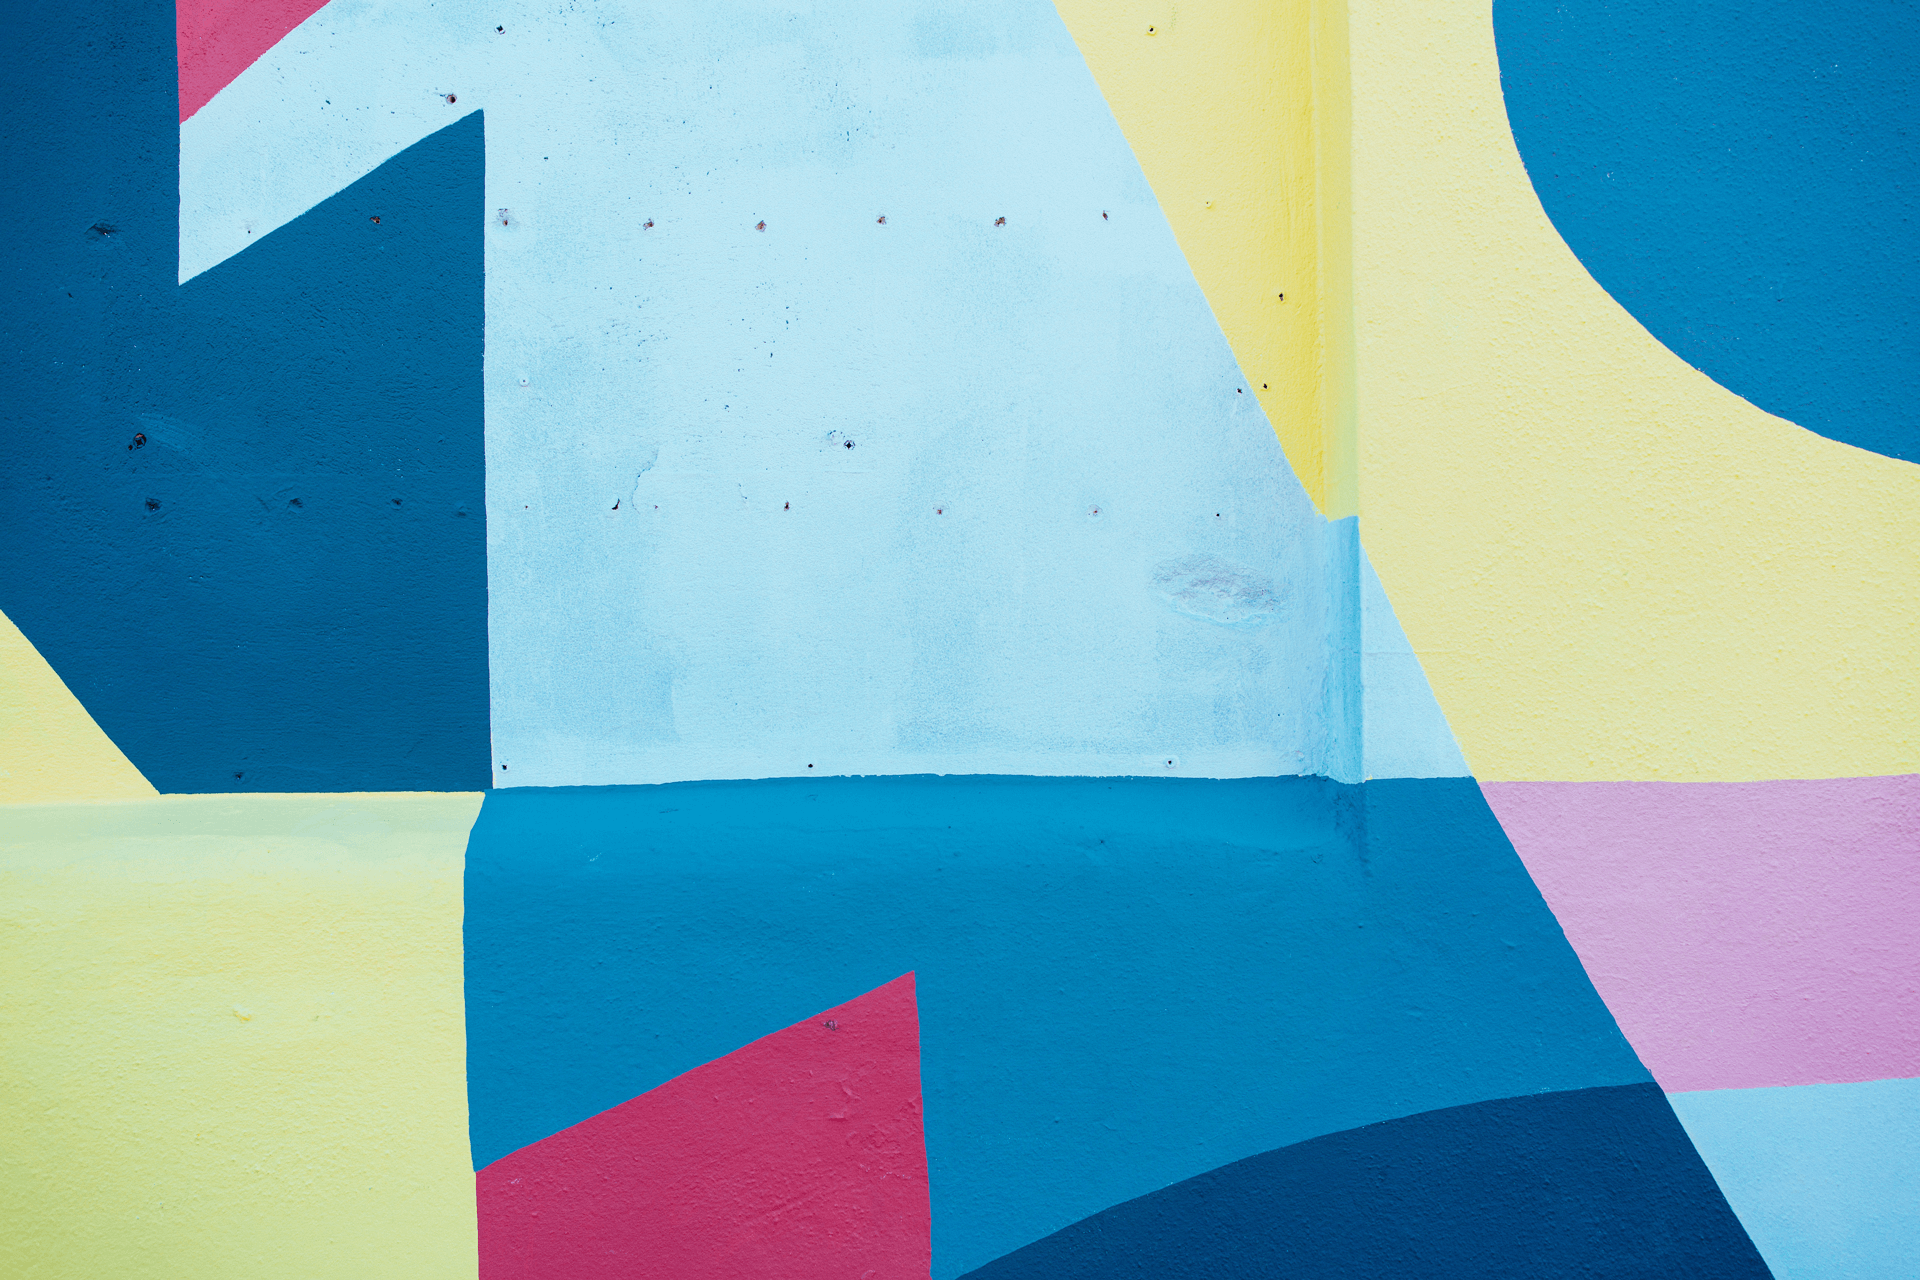 Wall with painting in blue yellow and pink